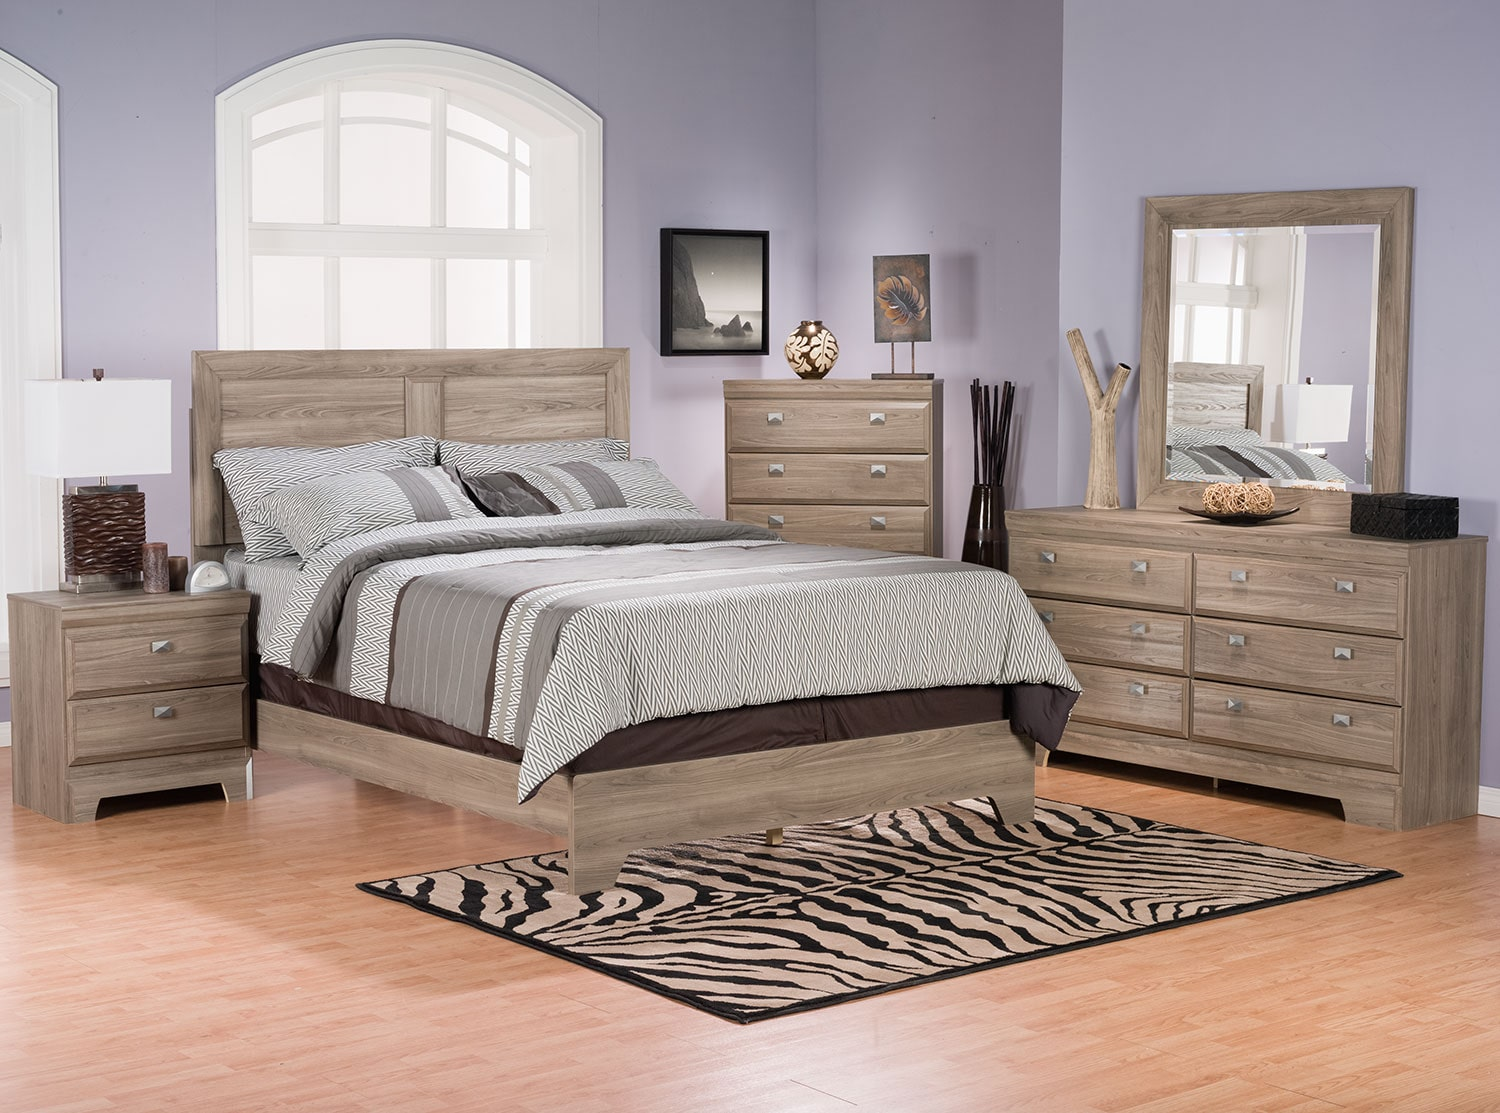 Bedroom Furniture - Yorkdale Light 7-Piece Queen Panel Bedroom Package